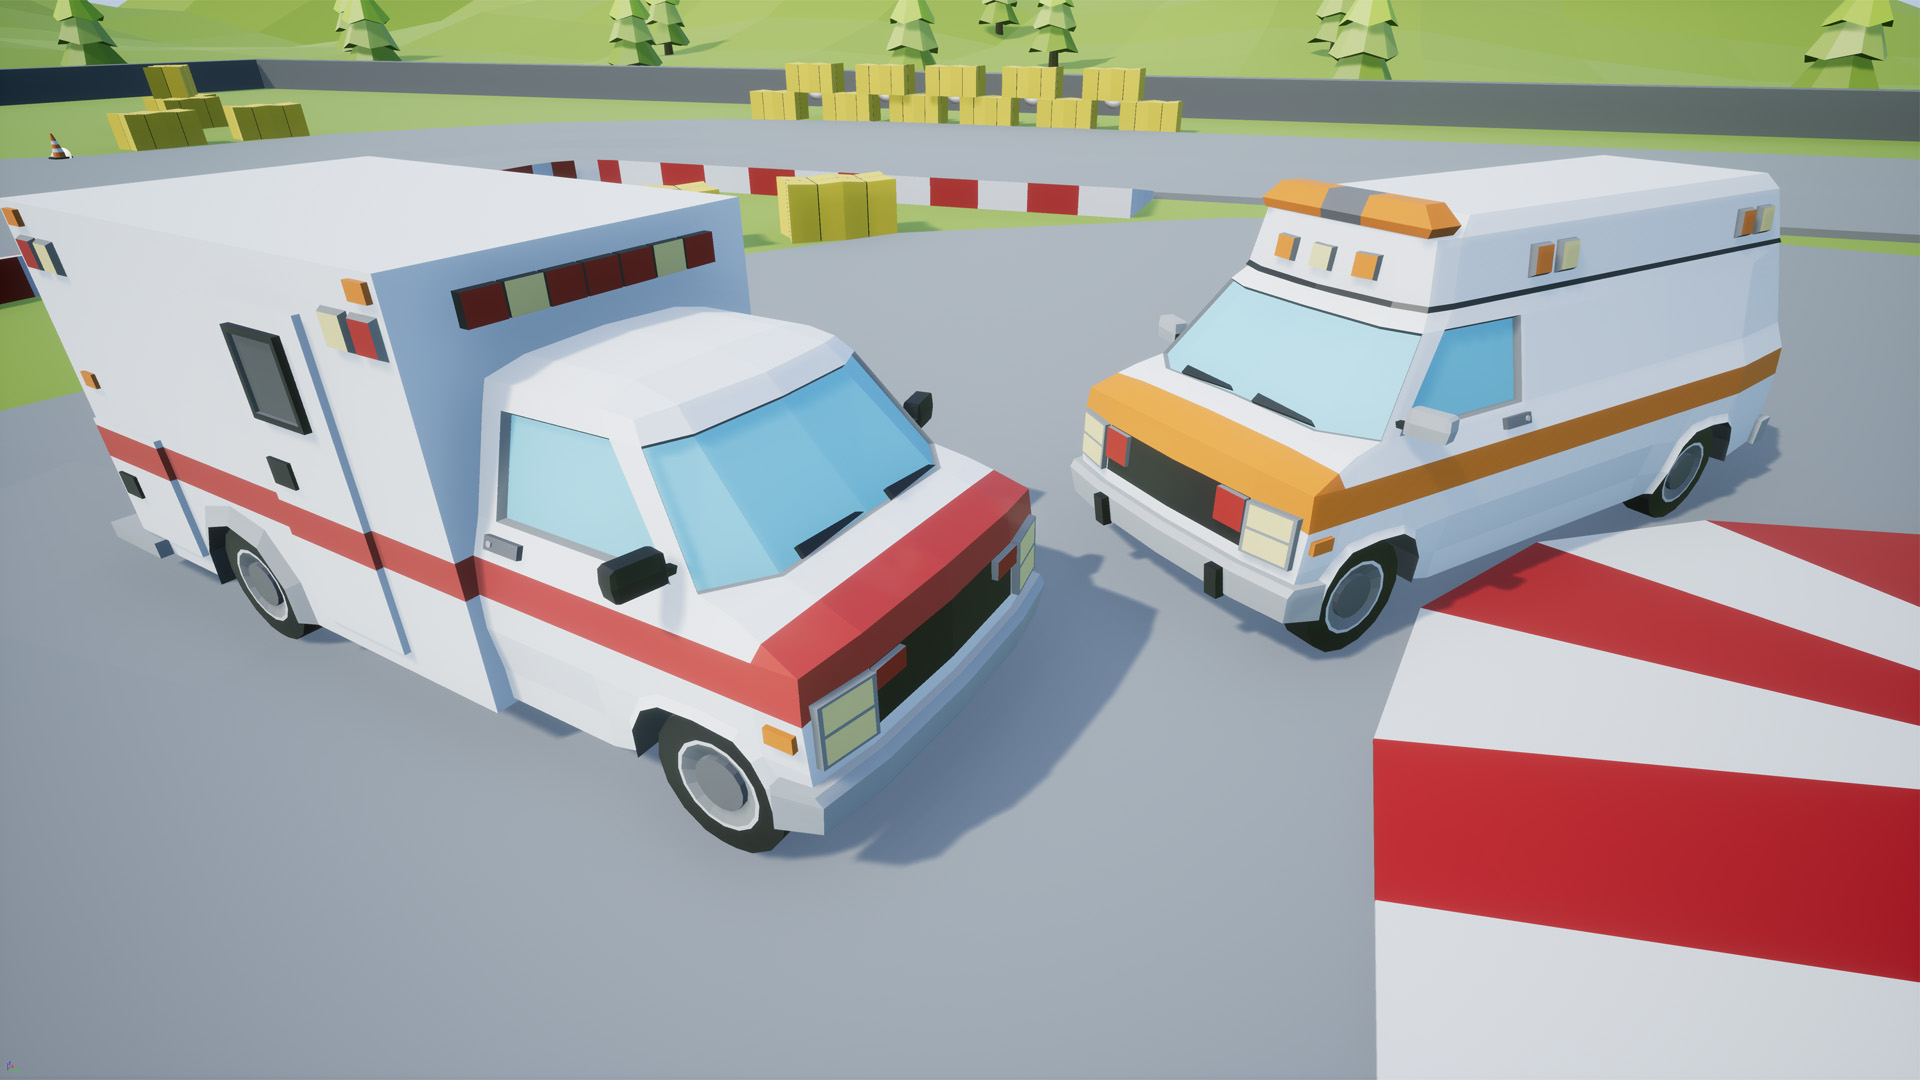 Low Poly Vehicles Ambulance Pack 4 by SuburbiaGames in Props